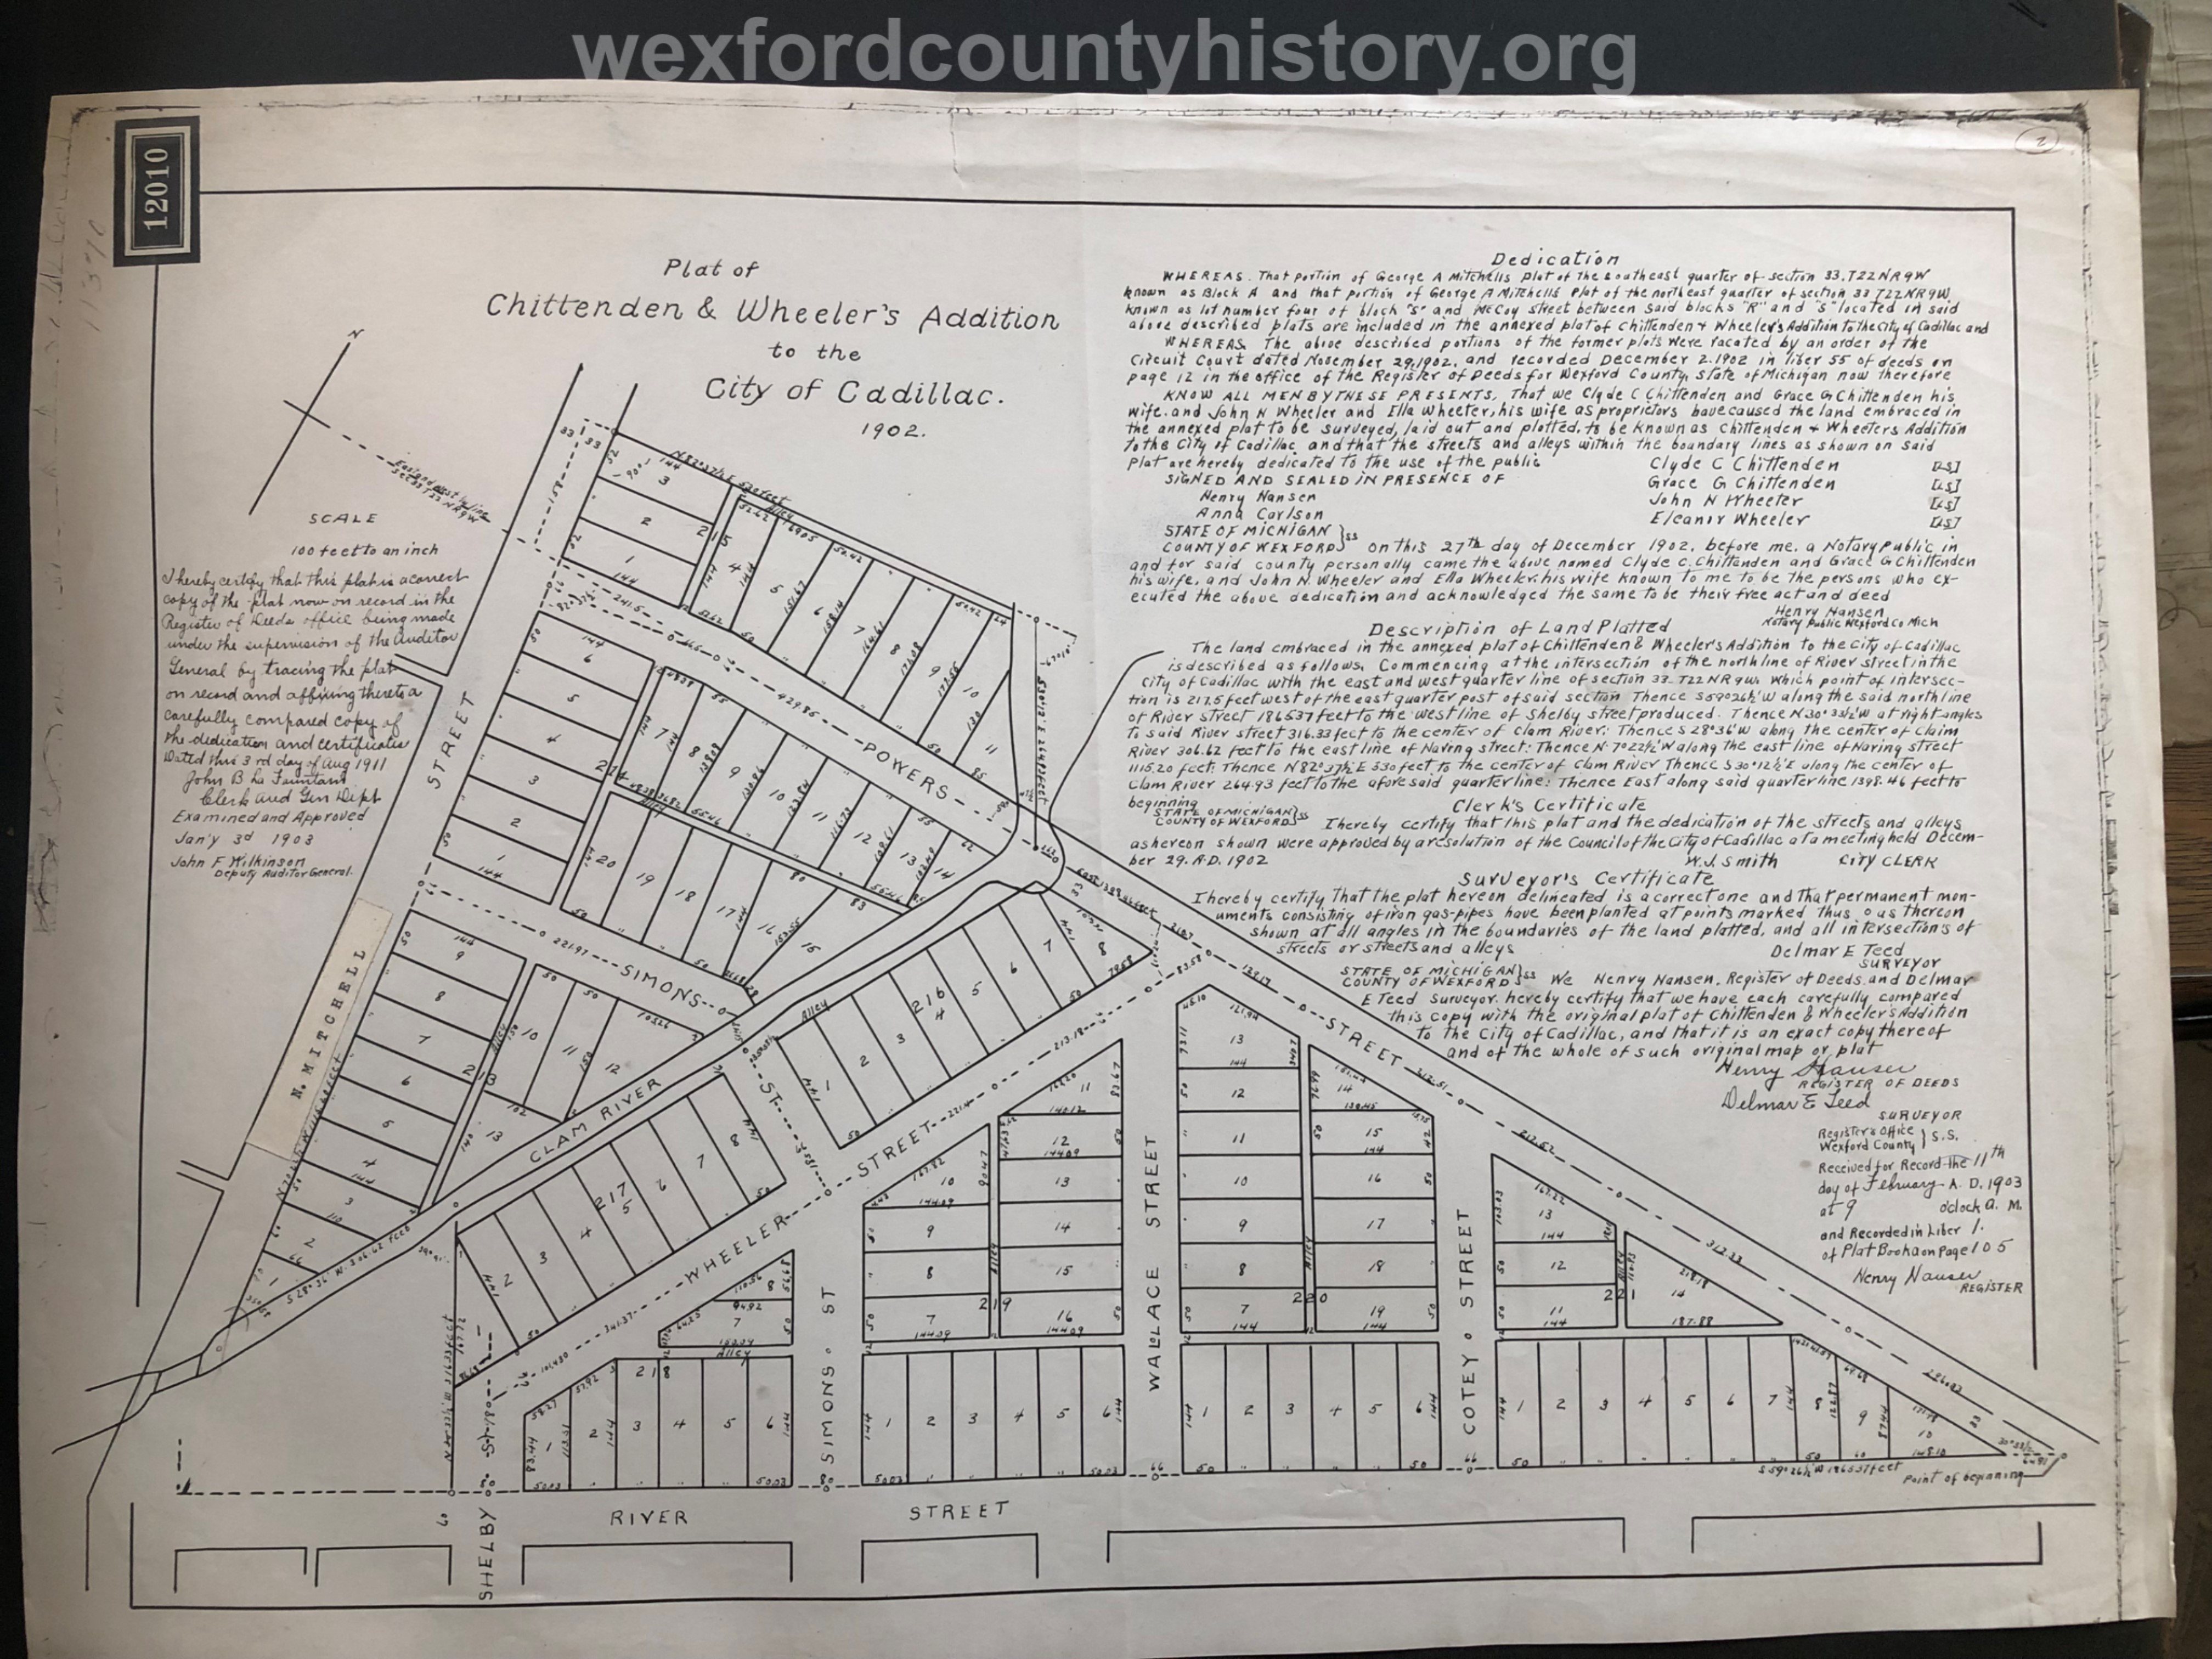 1902 - Chittenden And Wheeler's Addition To The City Of Cadillac